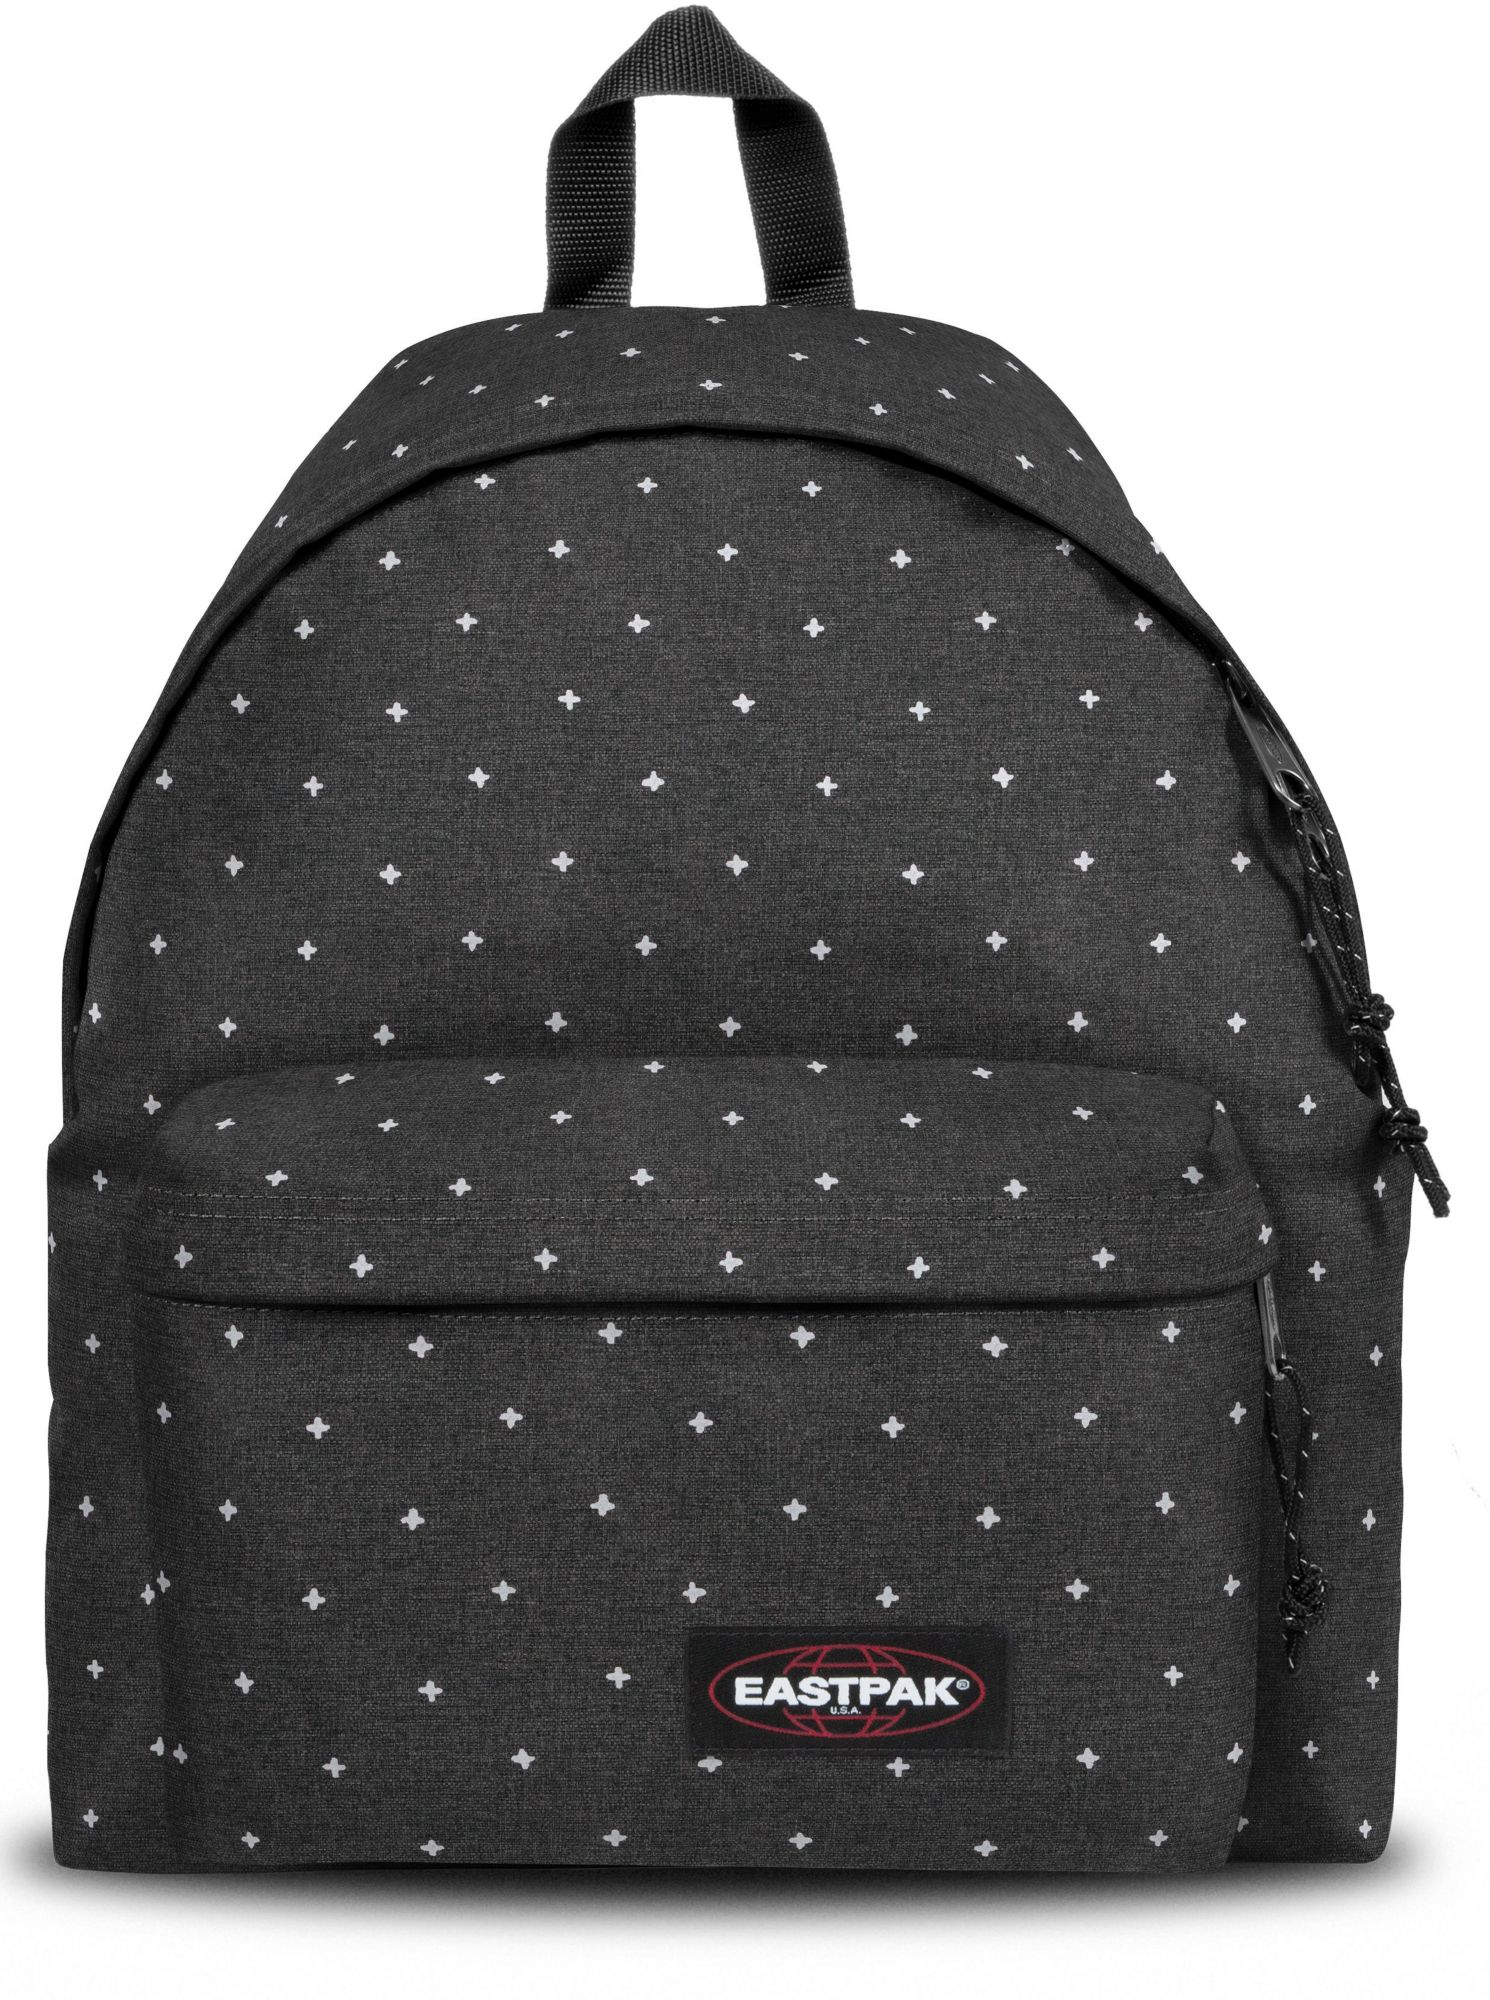 EASTPAK Eastpak Rucksack, »PADDED PAK'R white crosses«